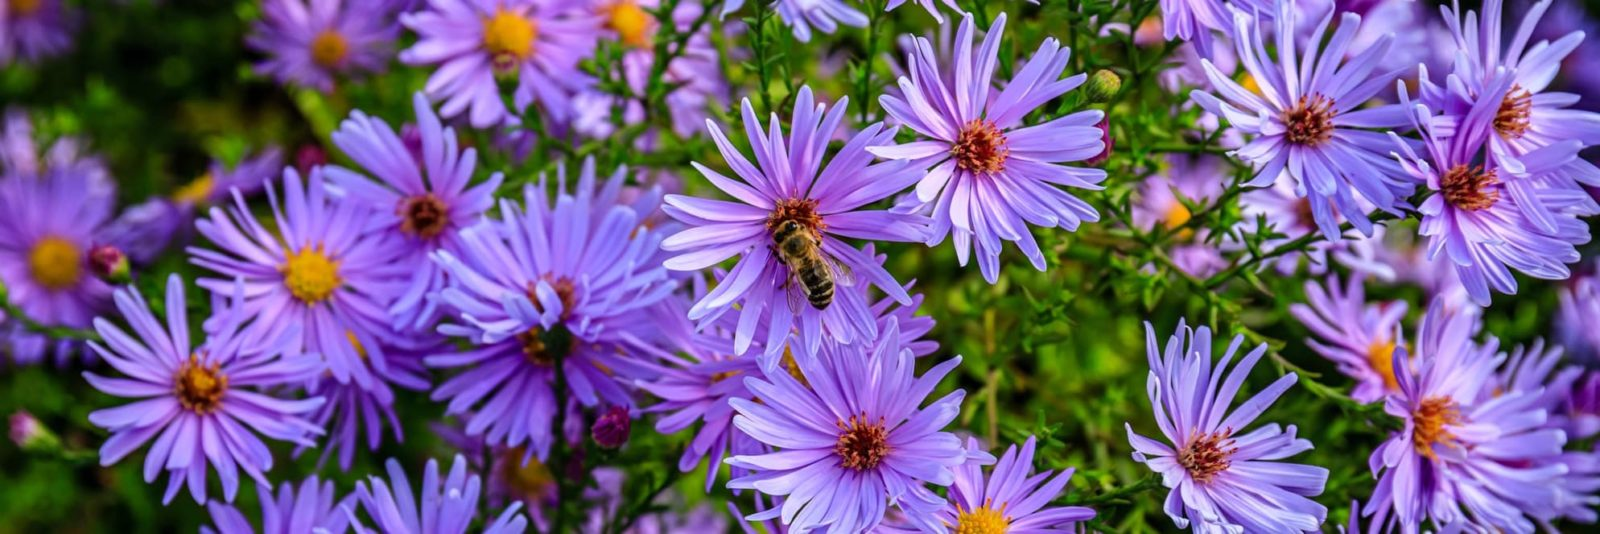 purple and yellow asters flowers with pollinators